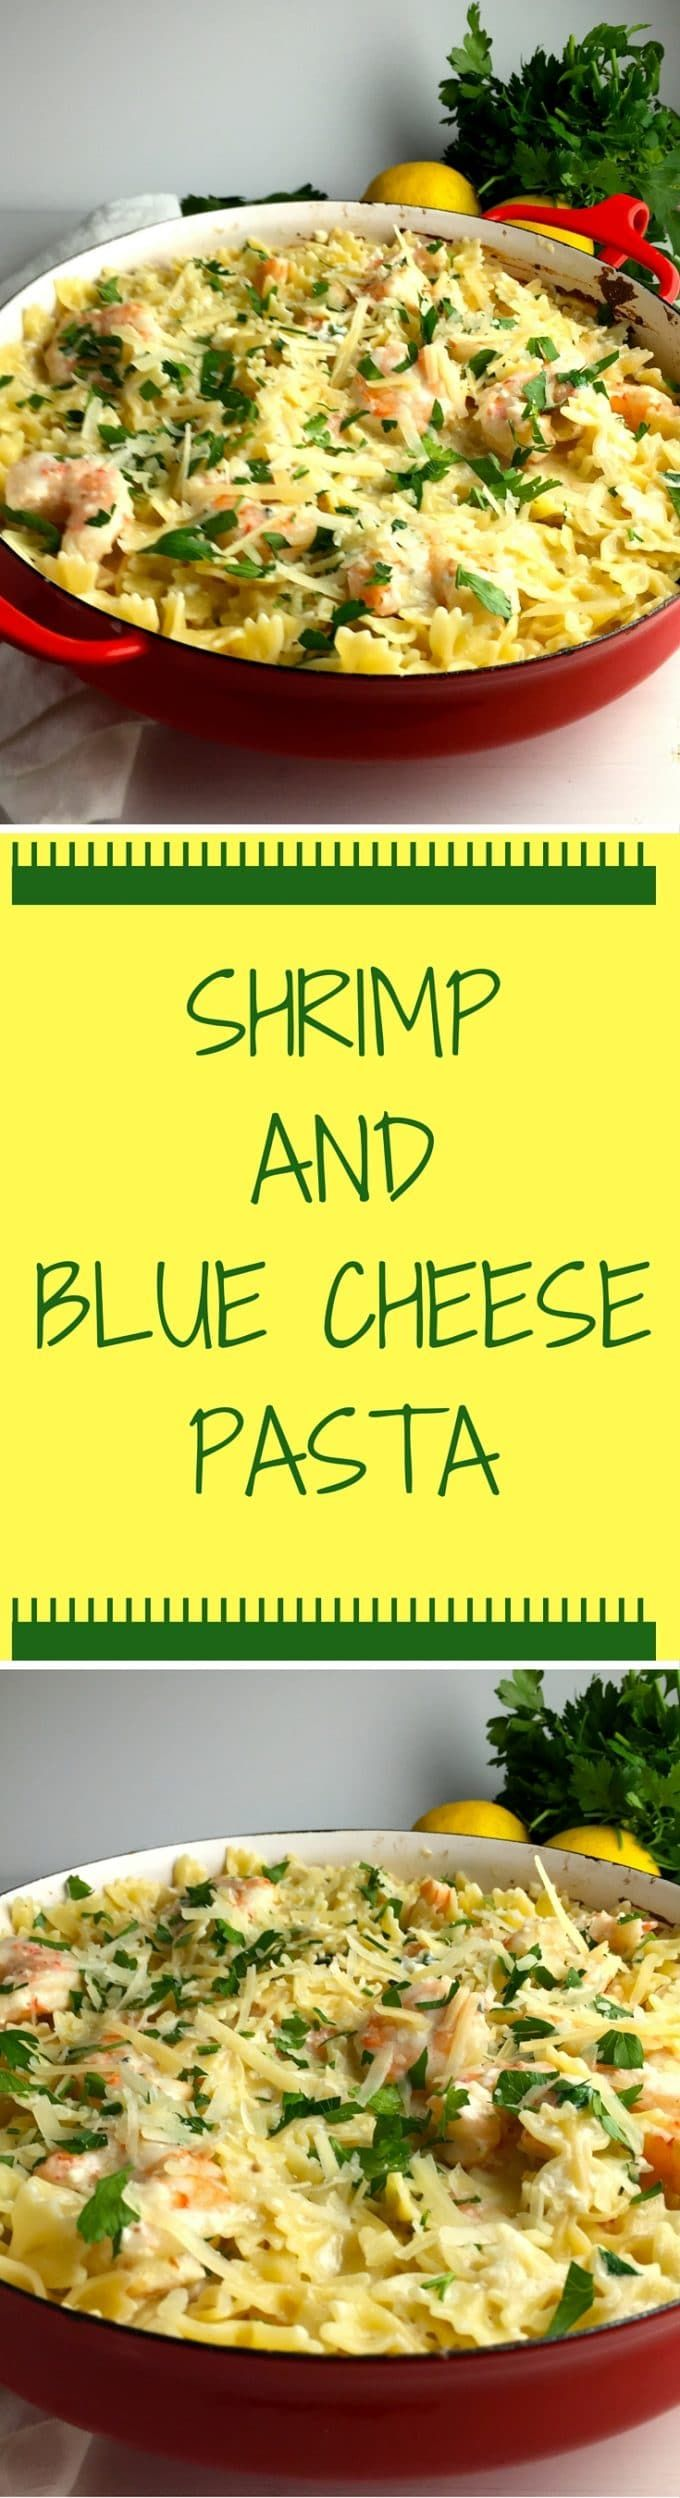 Shrimp and Blue Cheese Pasta is tender shrimp mixed with a decadent blue cheese sauce over yummy pasta covered with parmesan cheese. via @http://www.pinterest.com/gritspinecones/